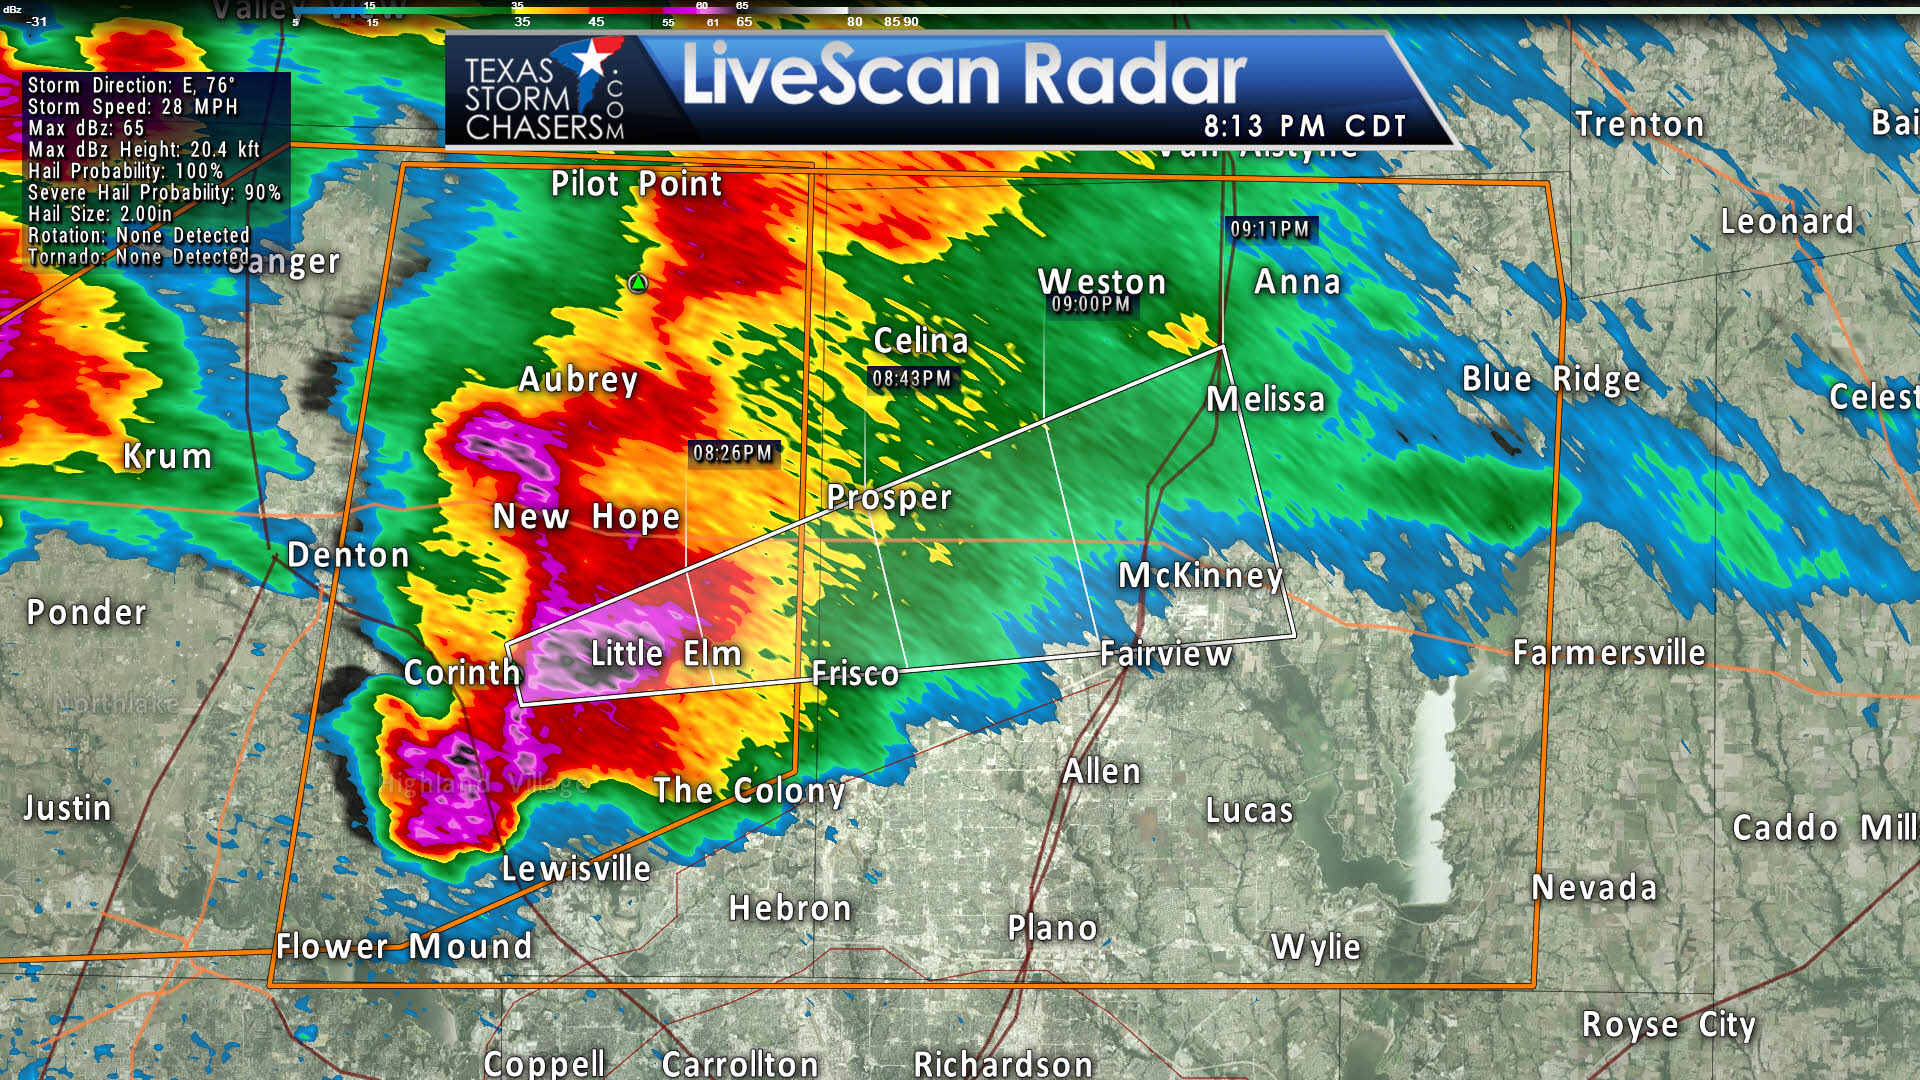 Map Of Texas Storms.Baseball Size Hail Moving Into Collin County Texas Storm Chasers